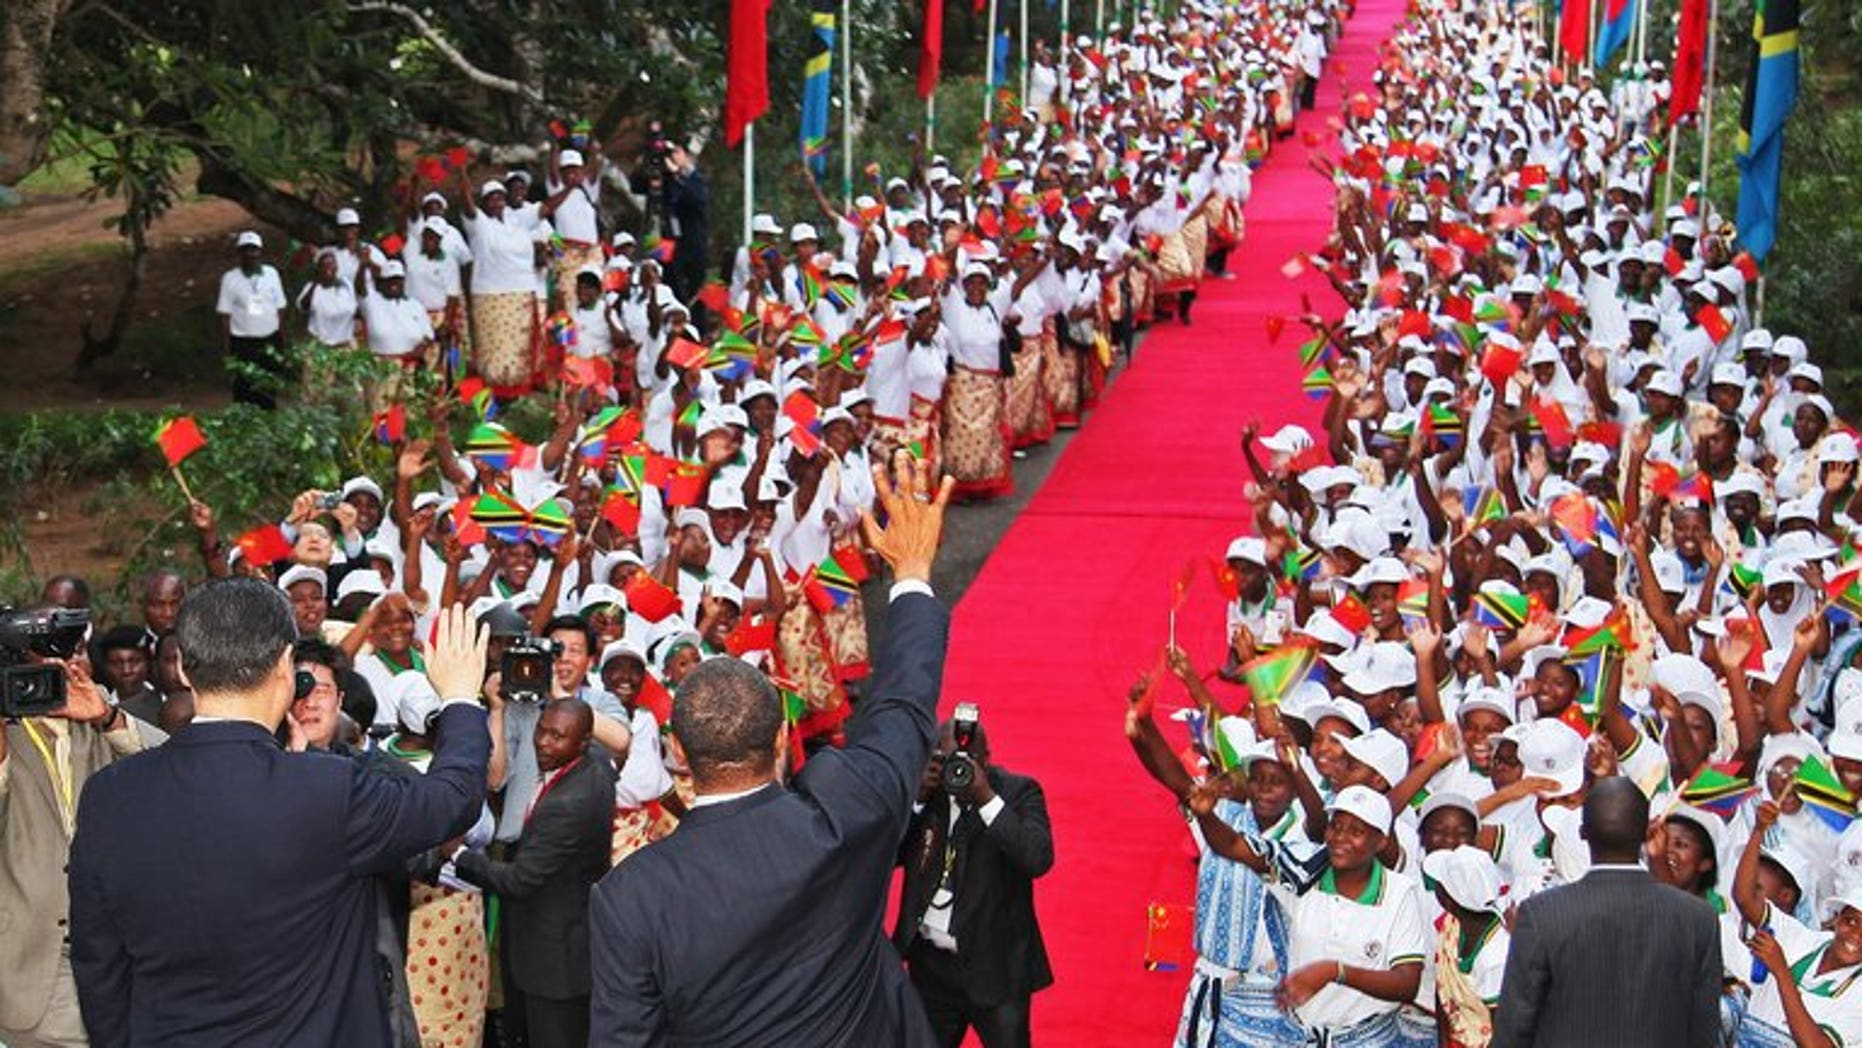 Chinese President Xi Jinping (L) and Tanzanian President Jakaya Kikwete (R) wave to crowds in Dar Es Salaam on March 24, 2013. World leaders visit Africa relatively little, but Tanzania is preparing to host US President Barack Obama just three months since a state visit the Chinese leader.